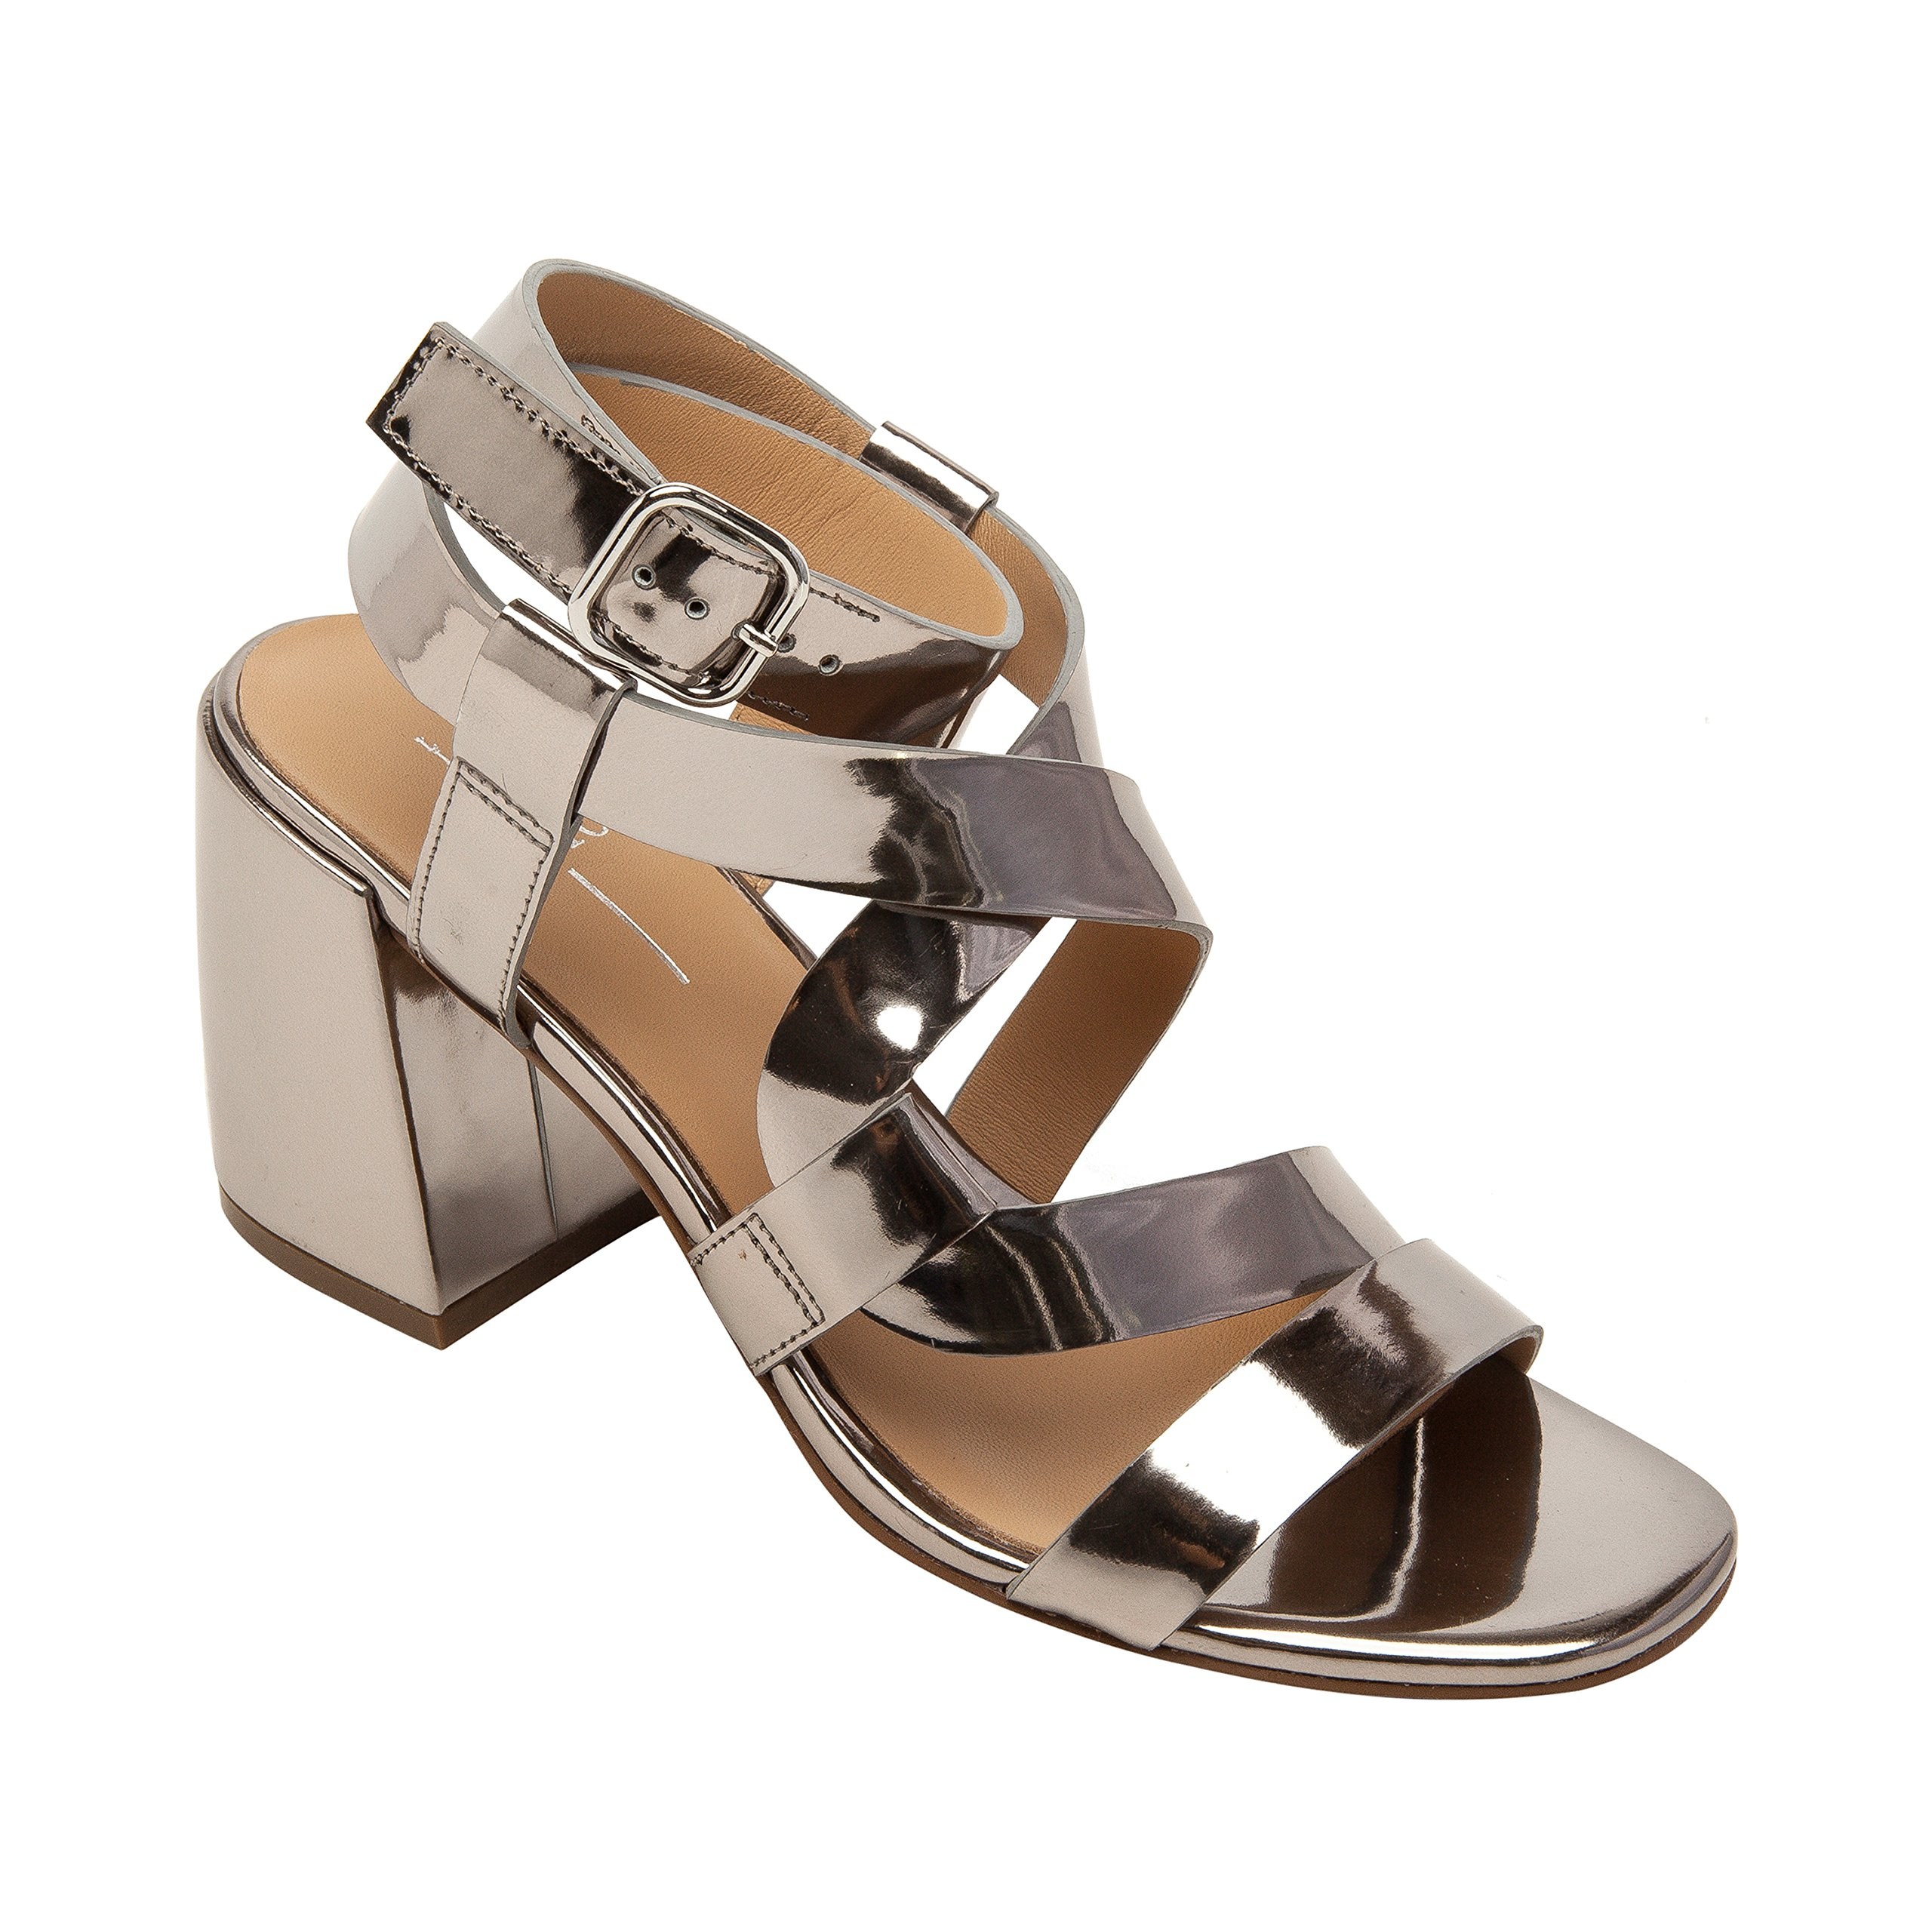 Linea Paolo Iris | Women's Leather Serpentine Ankle Strap Comfortable Block Heel Sandal (New Spring) Silver Leather 8.5M